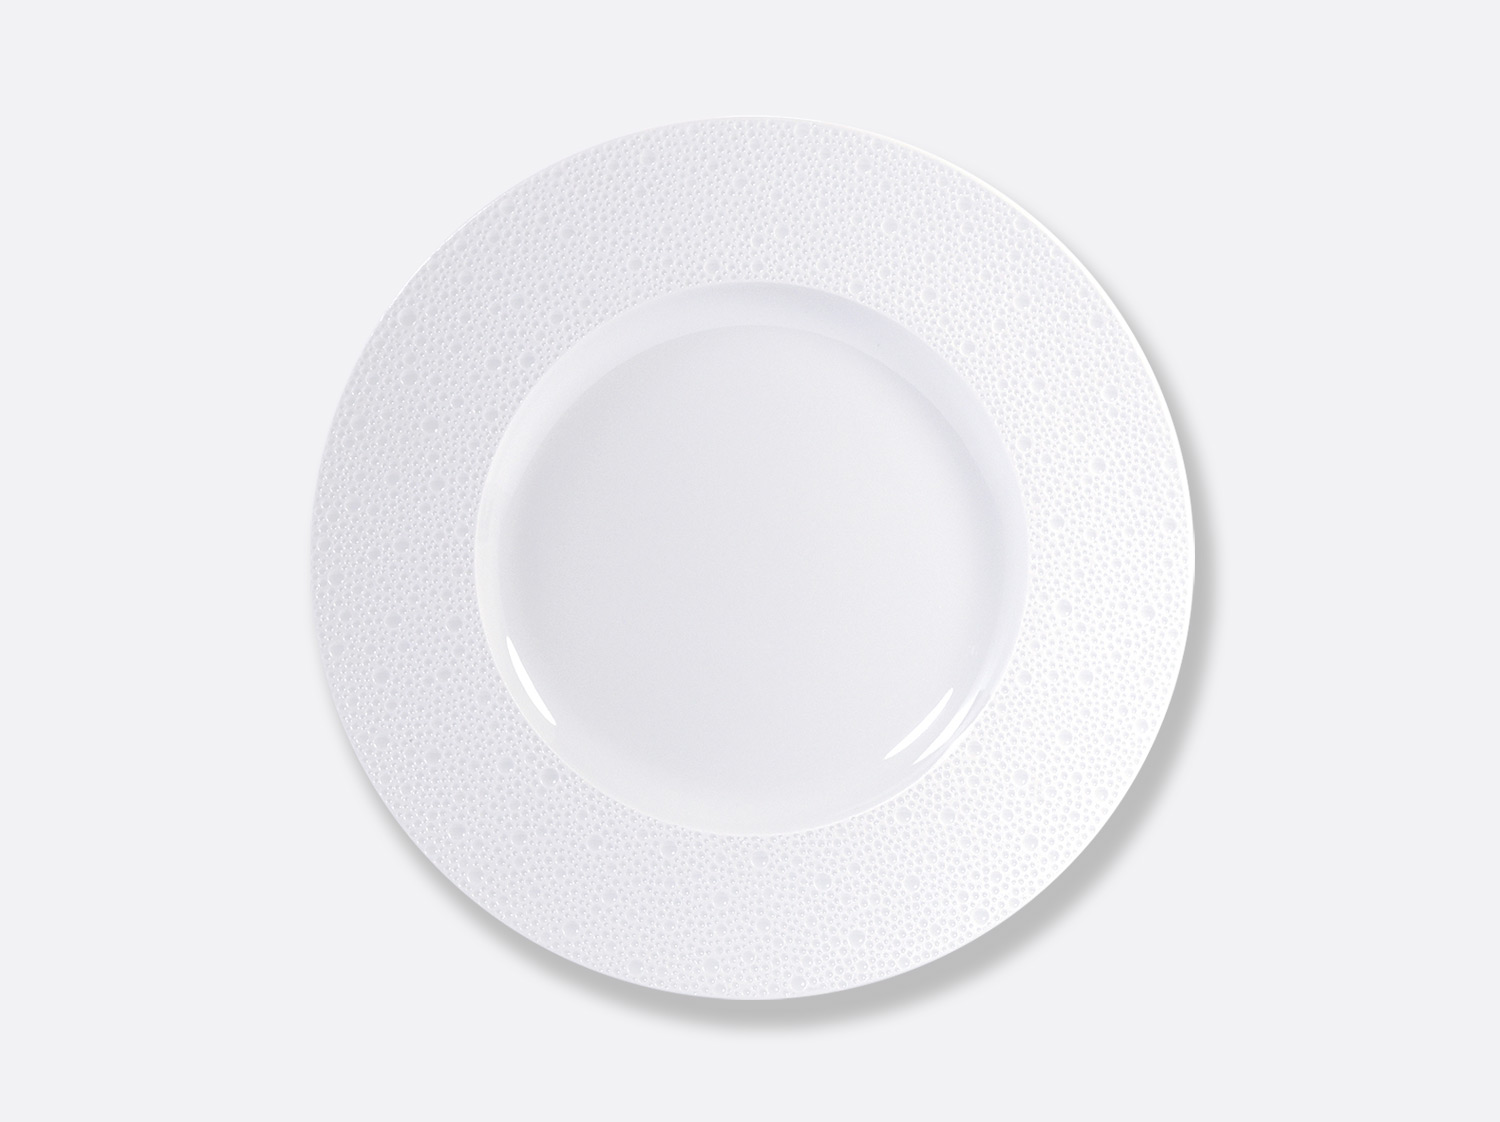 China Plate 31.5 cm of the collection Ecume | Bernardaud